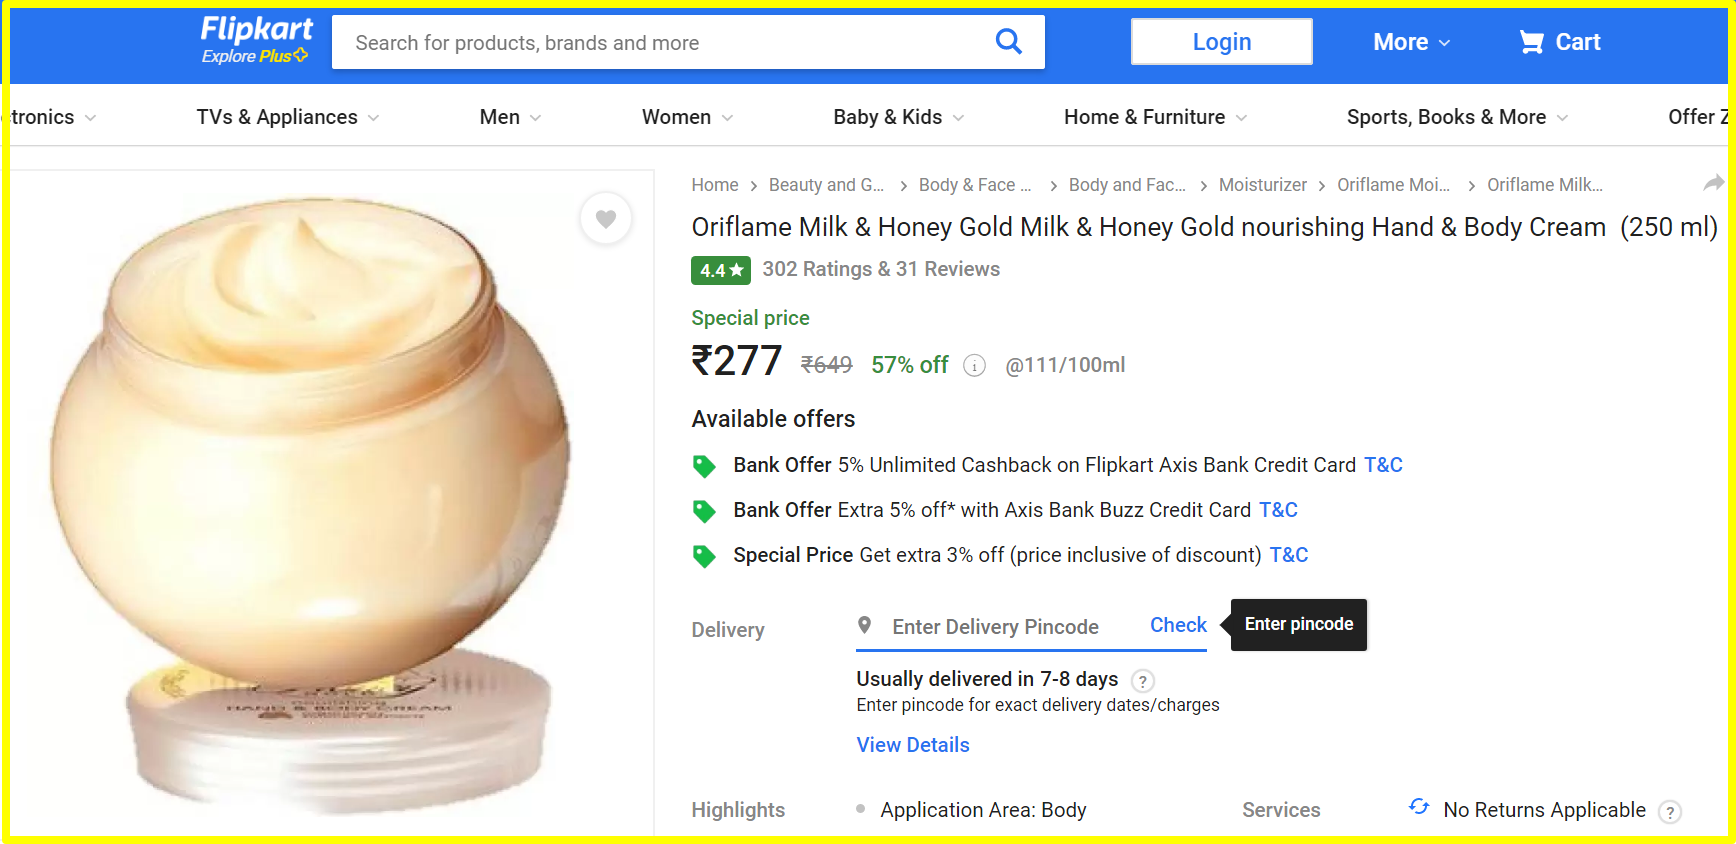 oriflame mlm review-flipkart cheaper than oriflame website